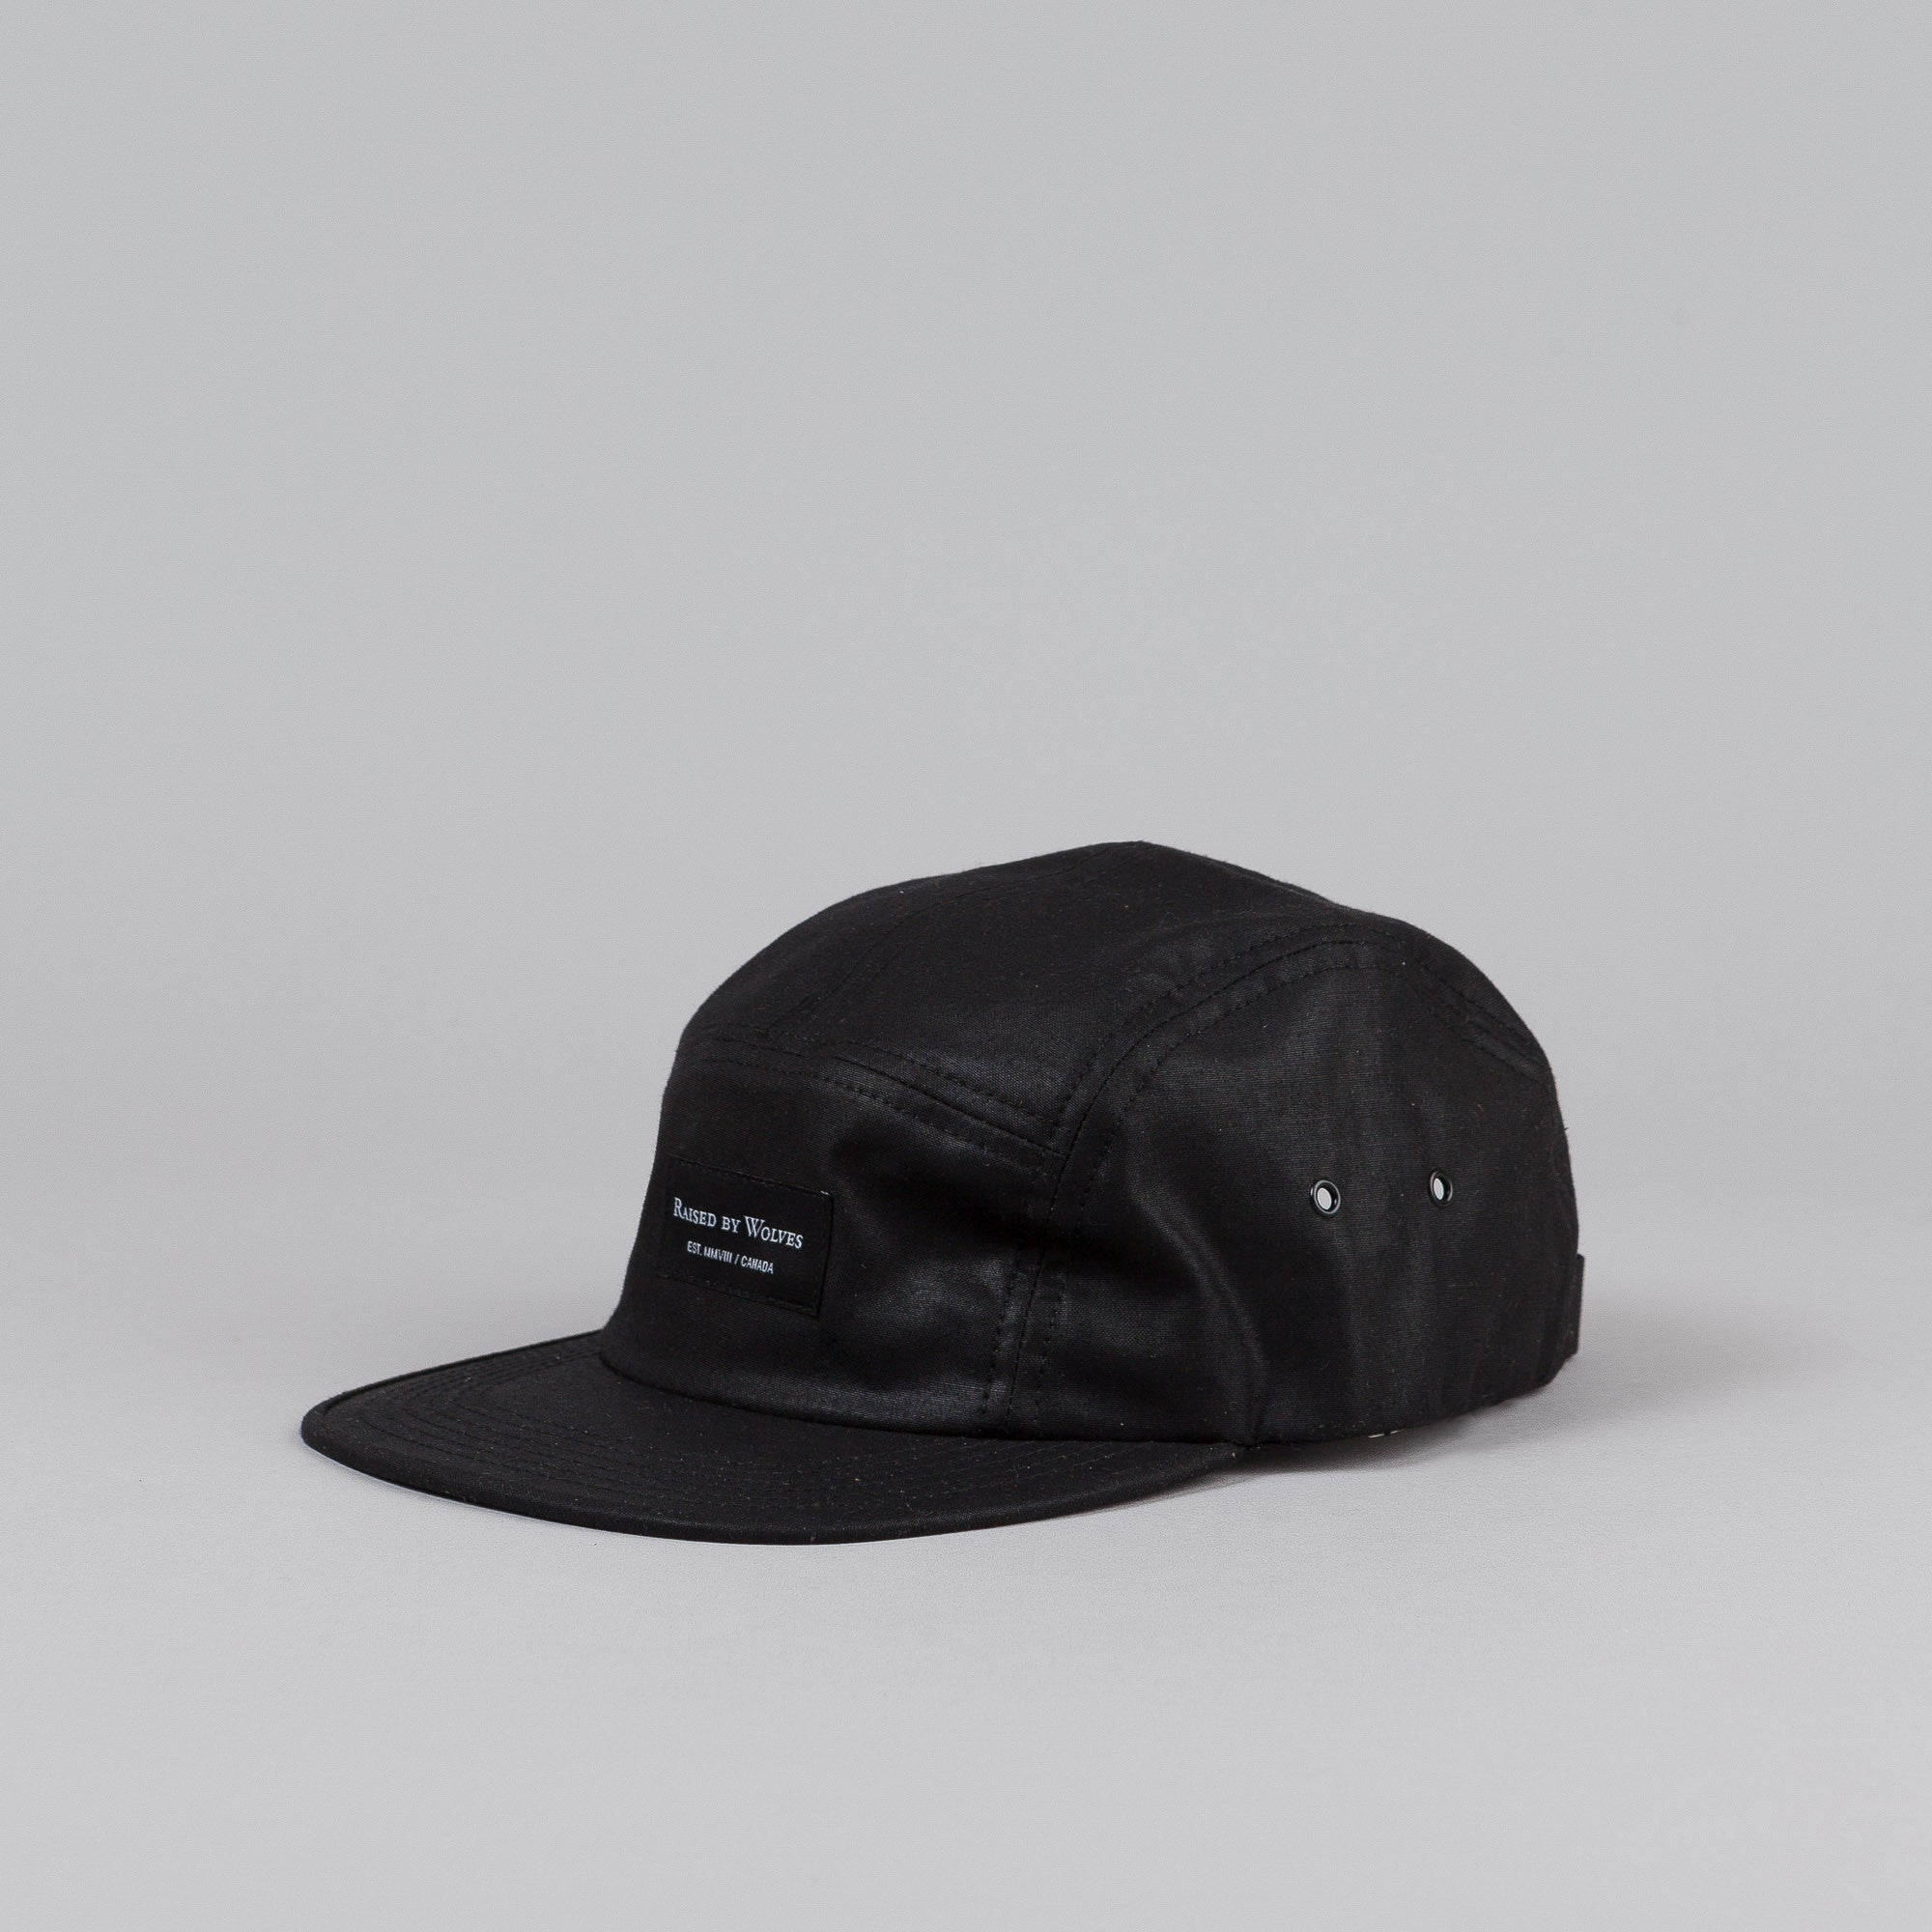 Raised By Wolves Algonquin Camp Cap Black